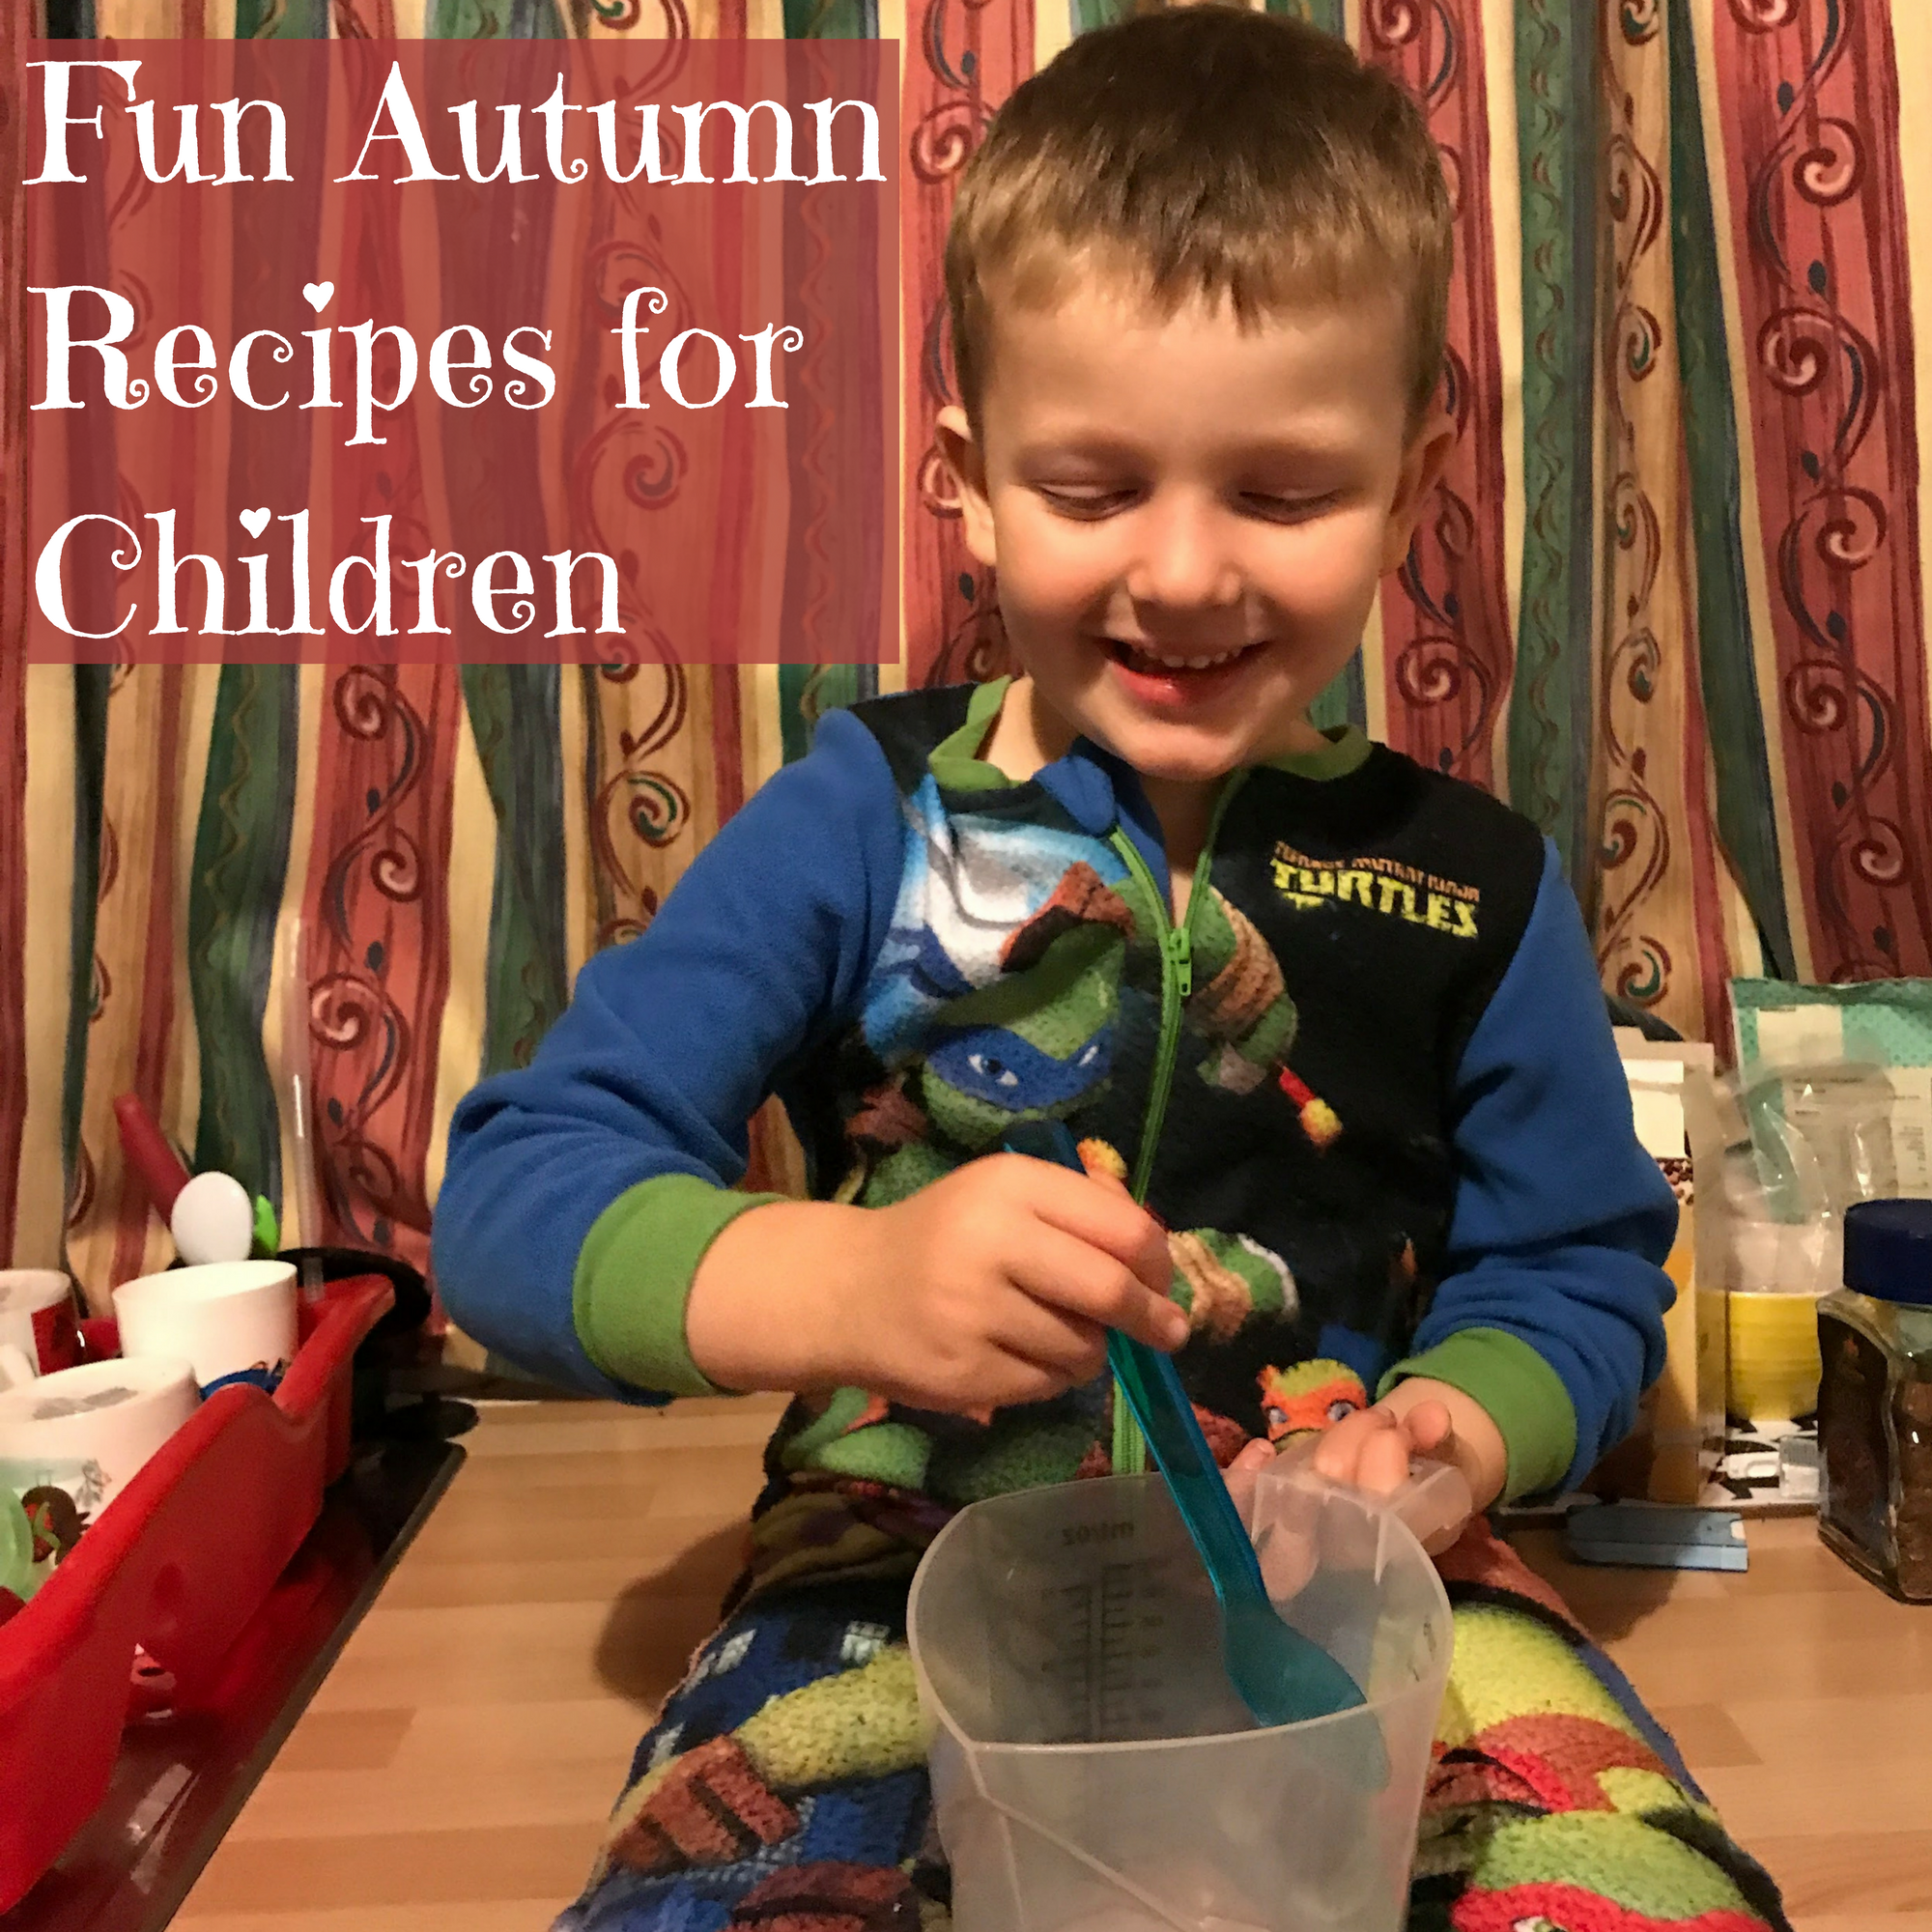 Fun Autumn Recipes for Children